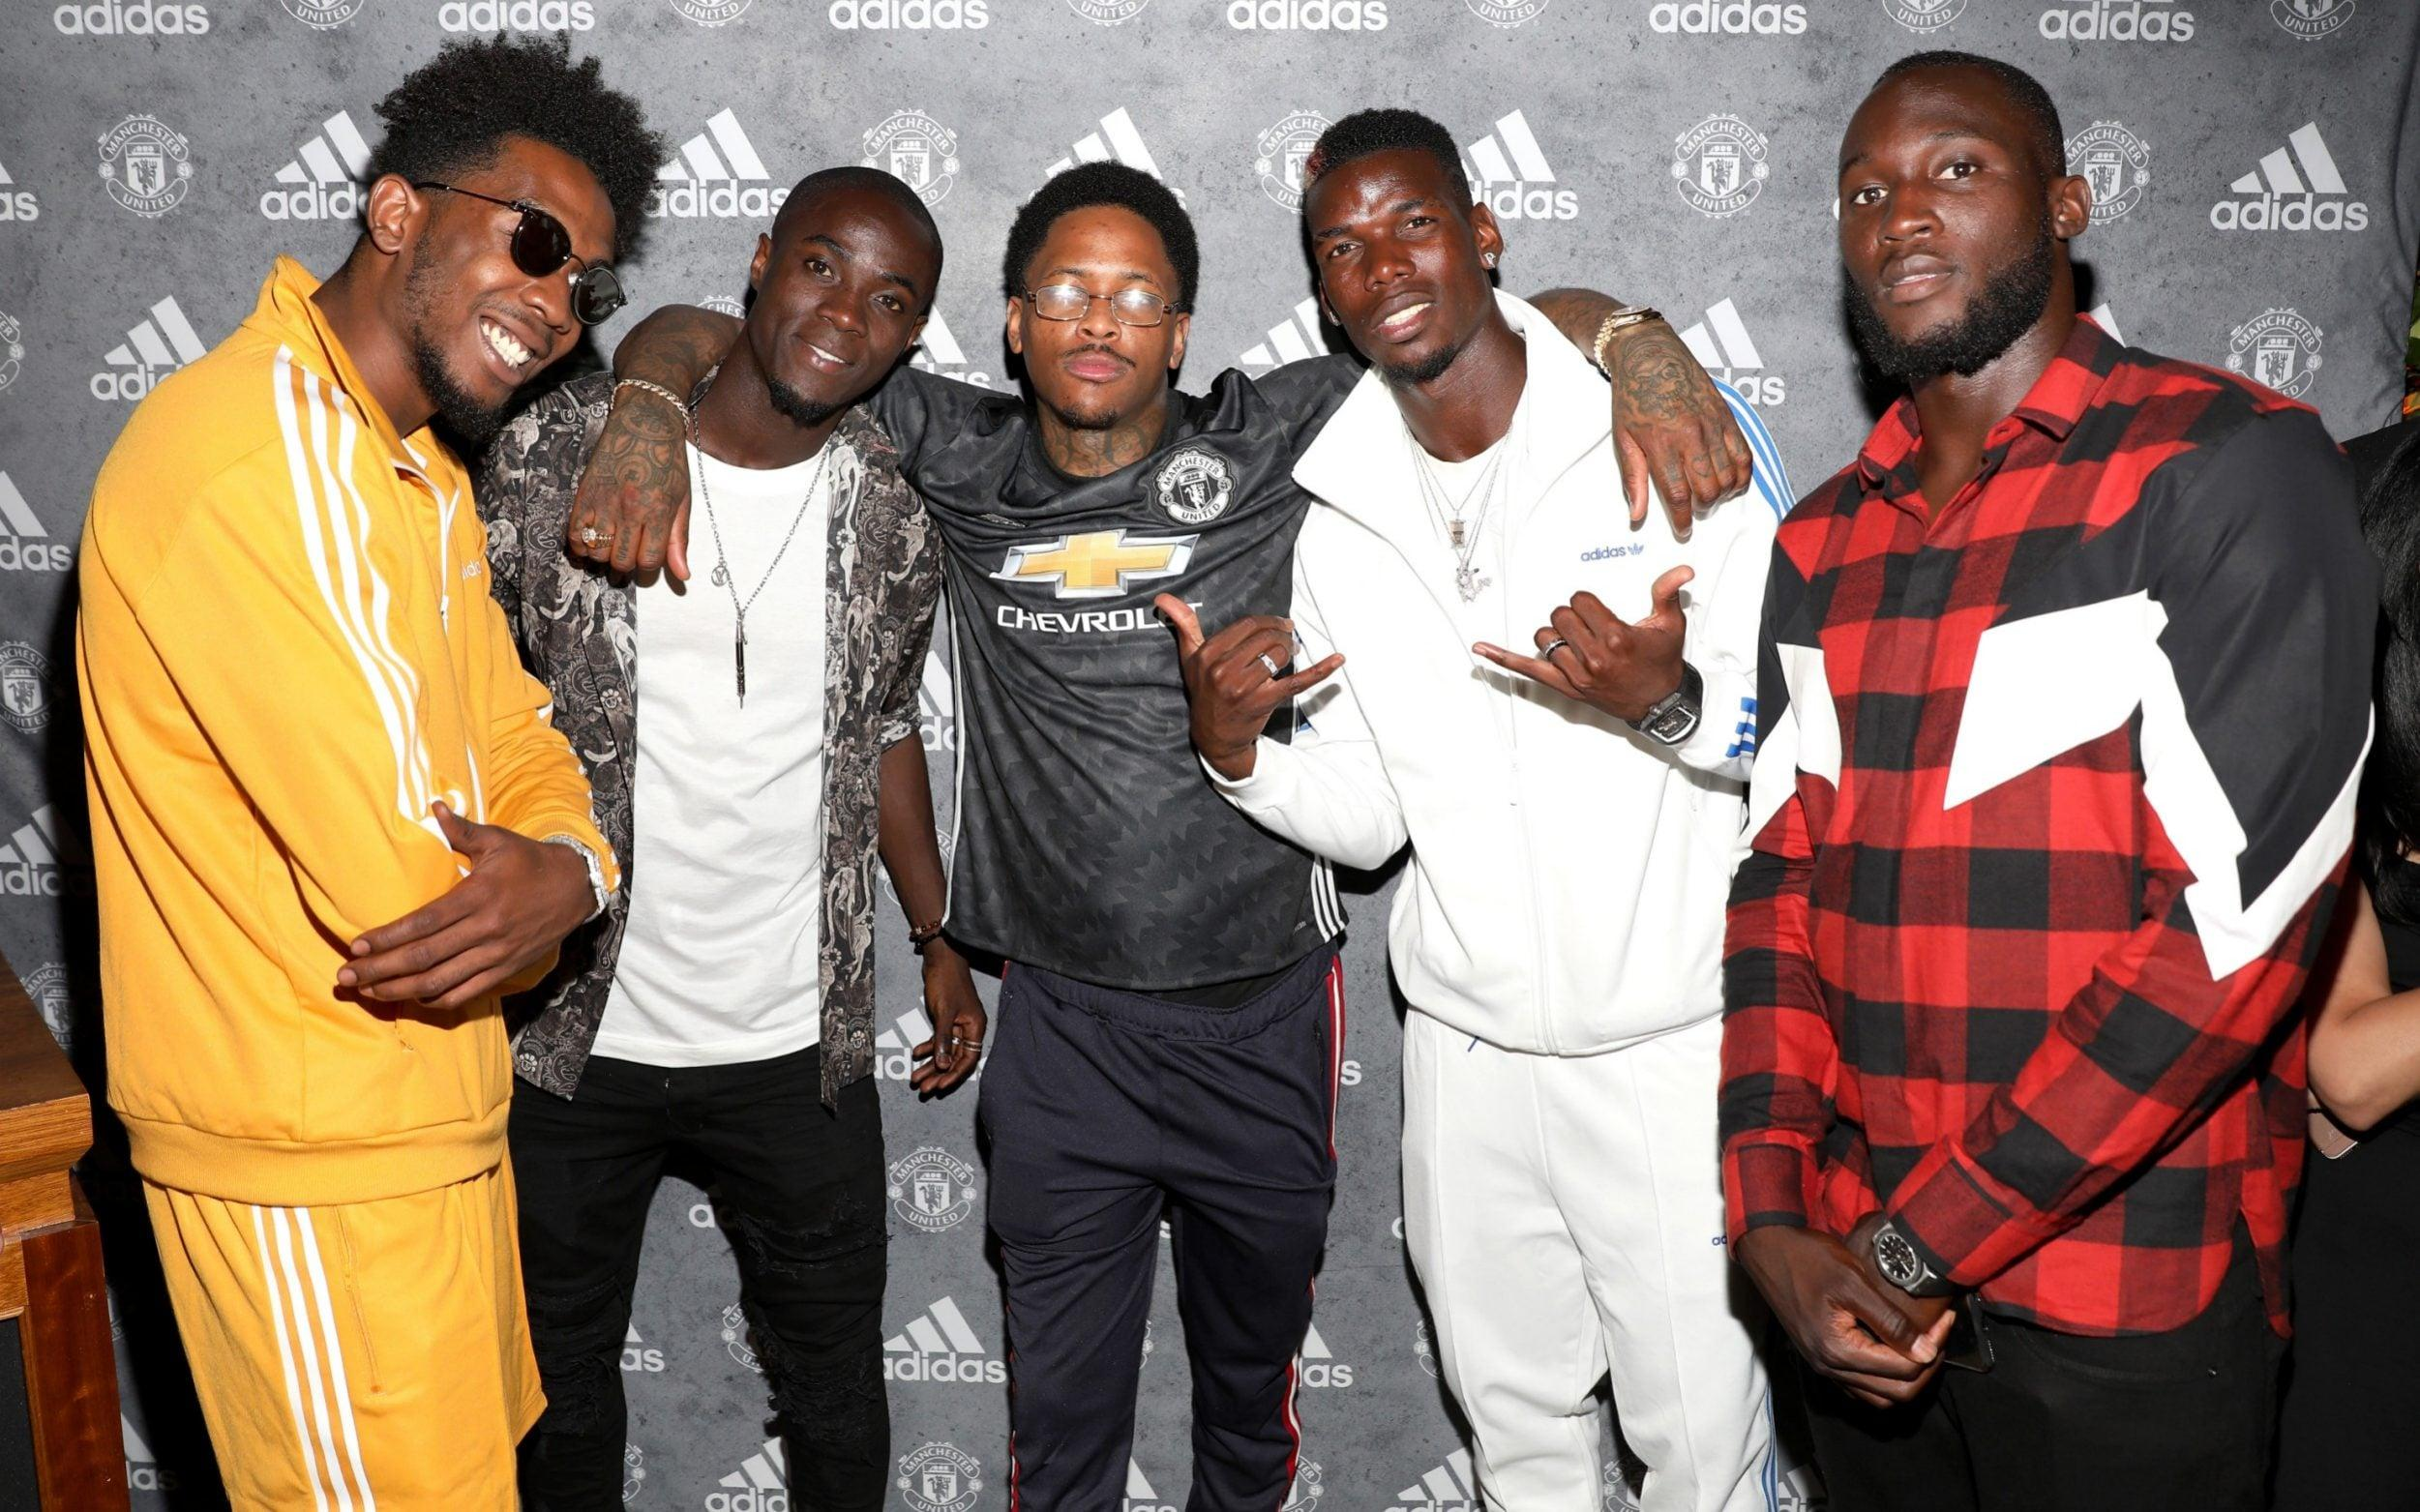 Pogba, pictured in 2017 alongside rappers Desiigner and YG and fellow players Eric Bailly and Romelu Lukaku —Meet the real Paul Pogba: The teetotal polyglot who helps unite the Manchester United dressing room - GETTY IMAGES